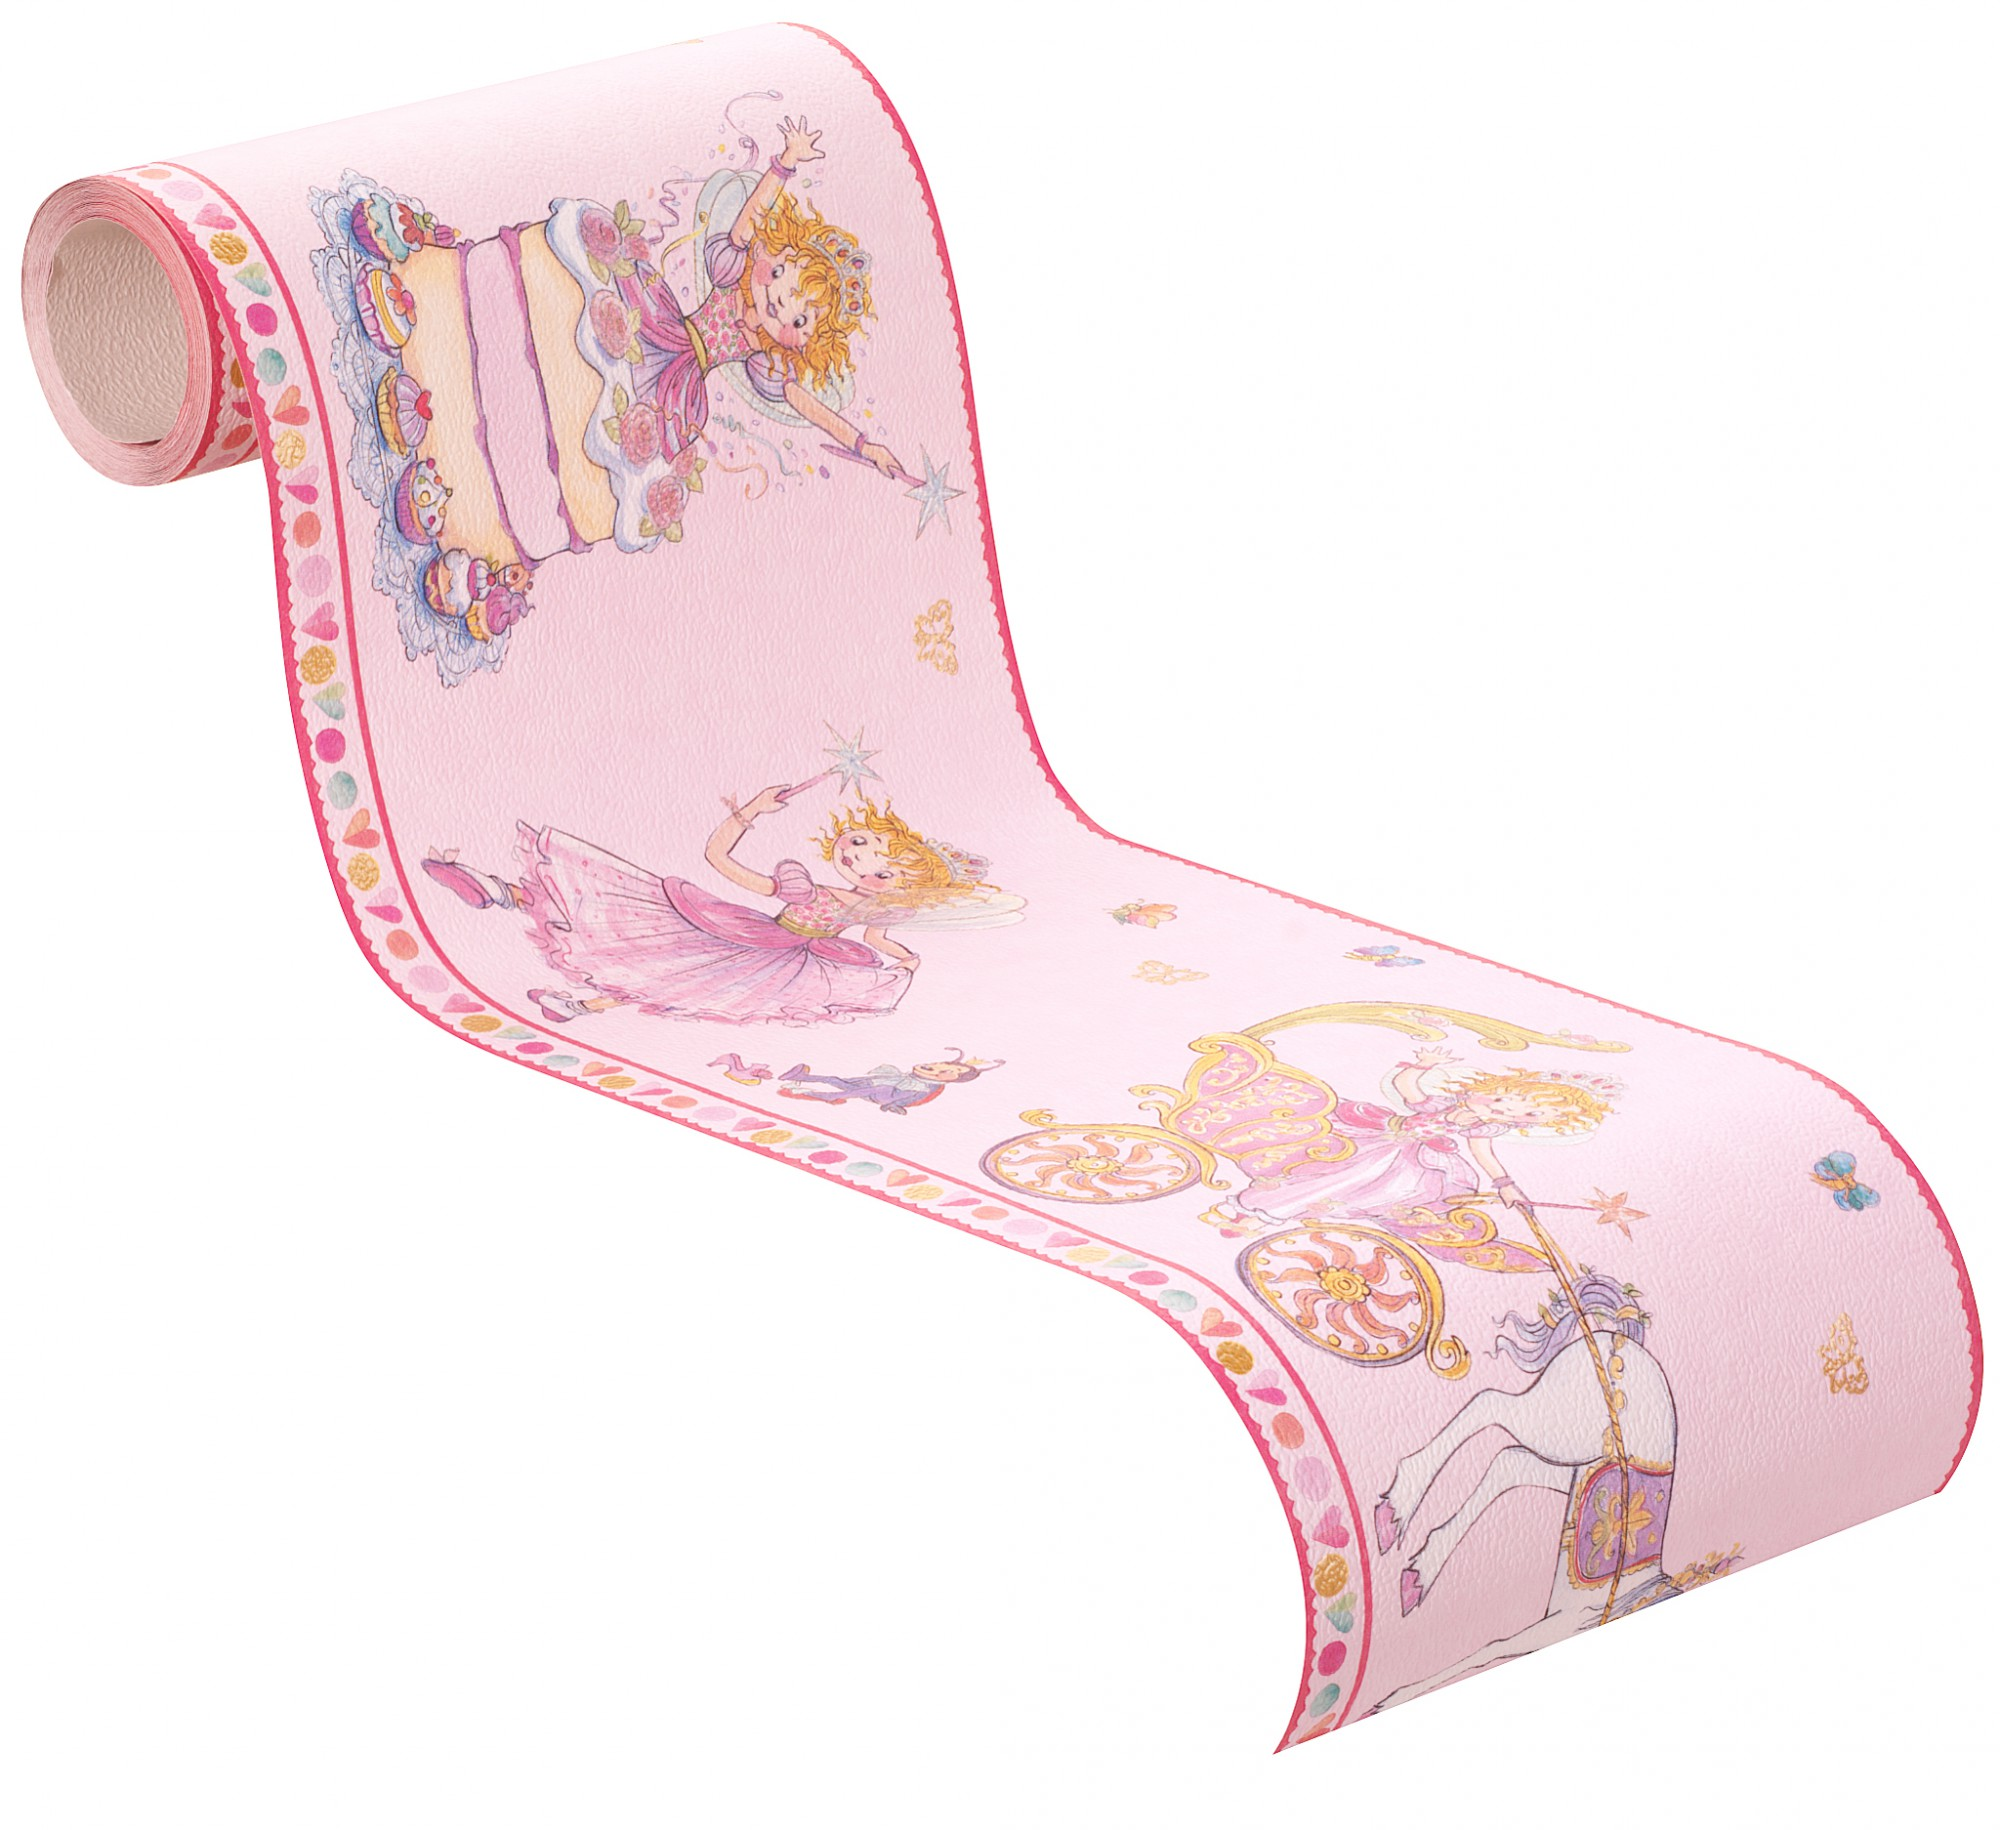 tapete borte prinzessin lillifee einhorn rosa bunt kindertapete rasch 298901 10 ebay. Black Bedroom Furniture Sets. Home Design Ideas